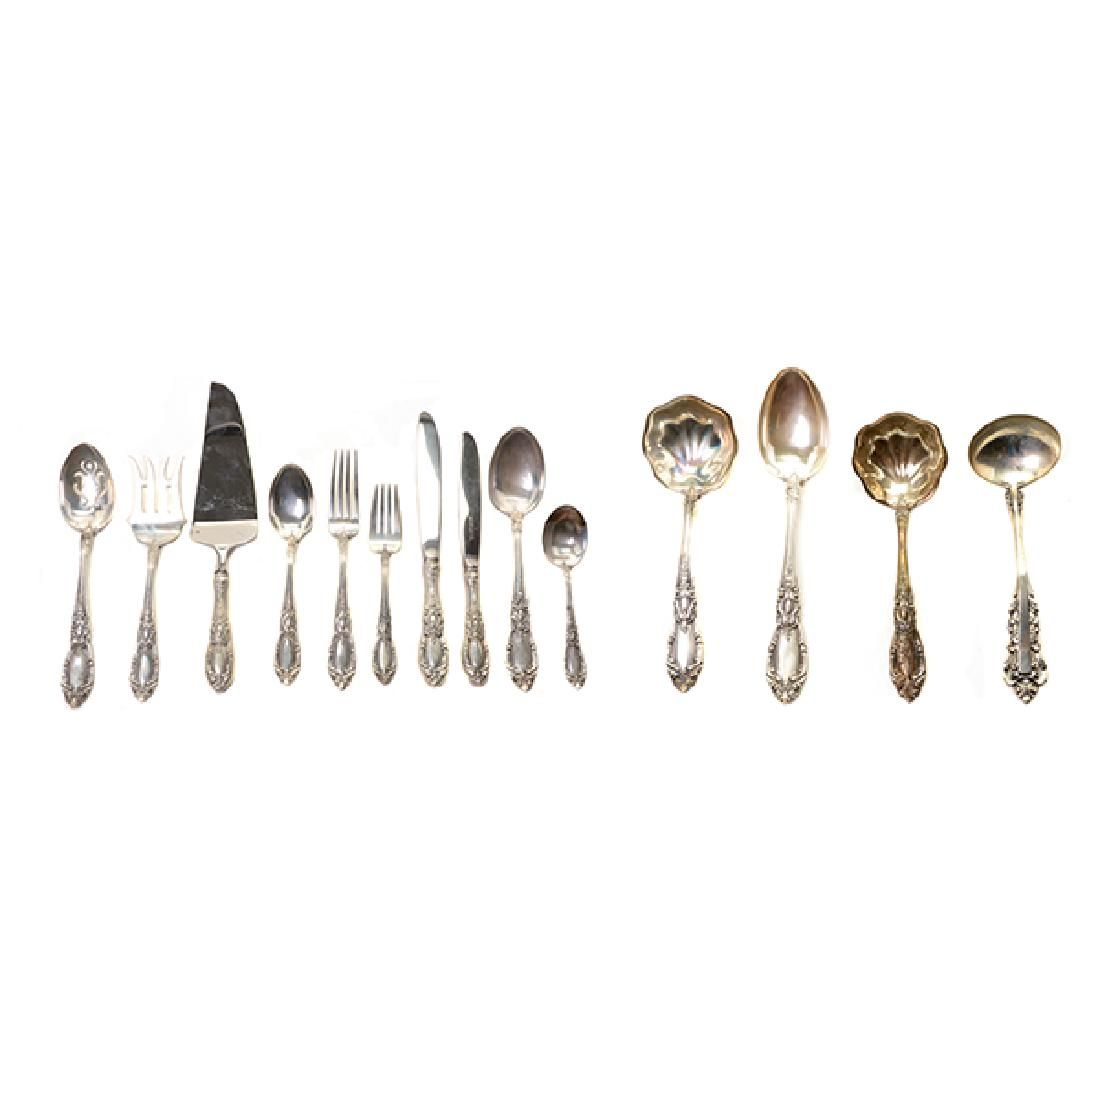 Set of Towle King Richard Sterling Silver Flatware